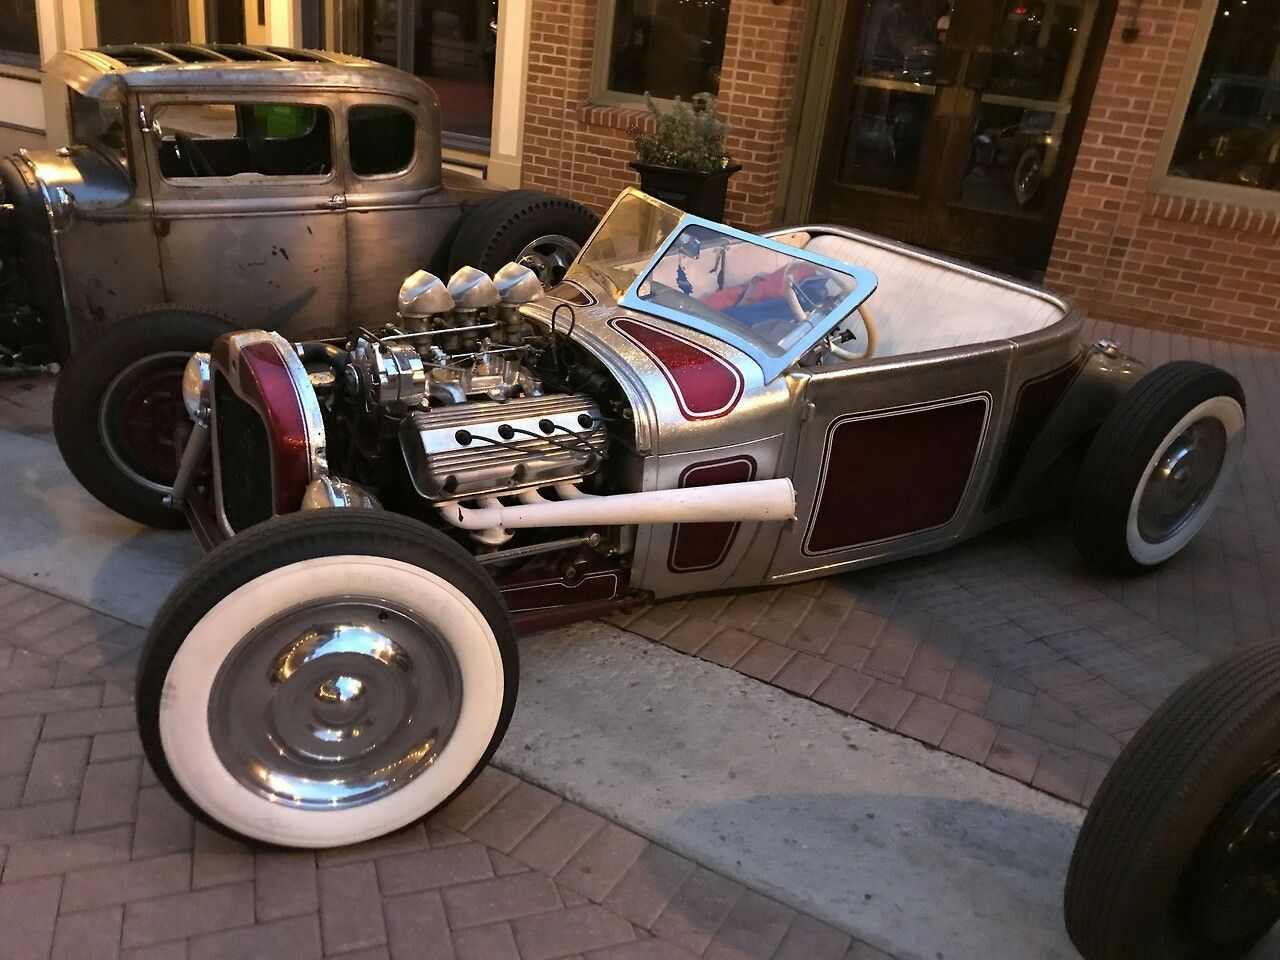 Pin by Ted Jennings on Old Skool Cars | Pinterest | Rats, Cars and ...